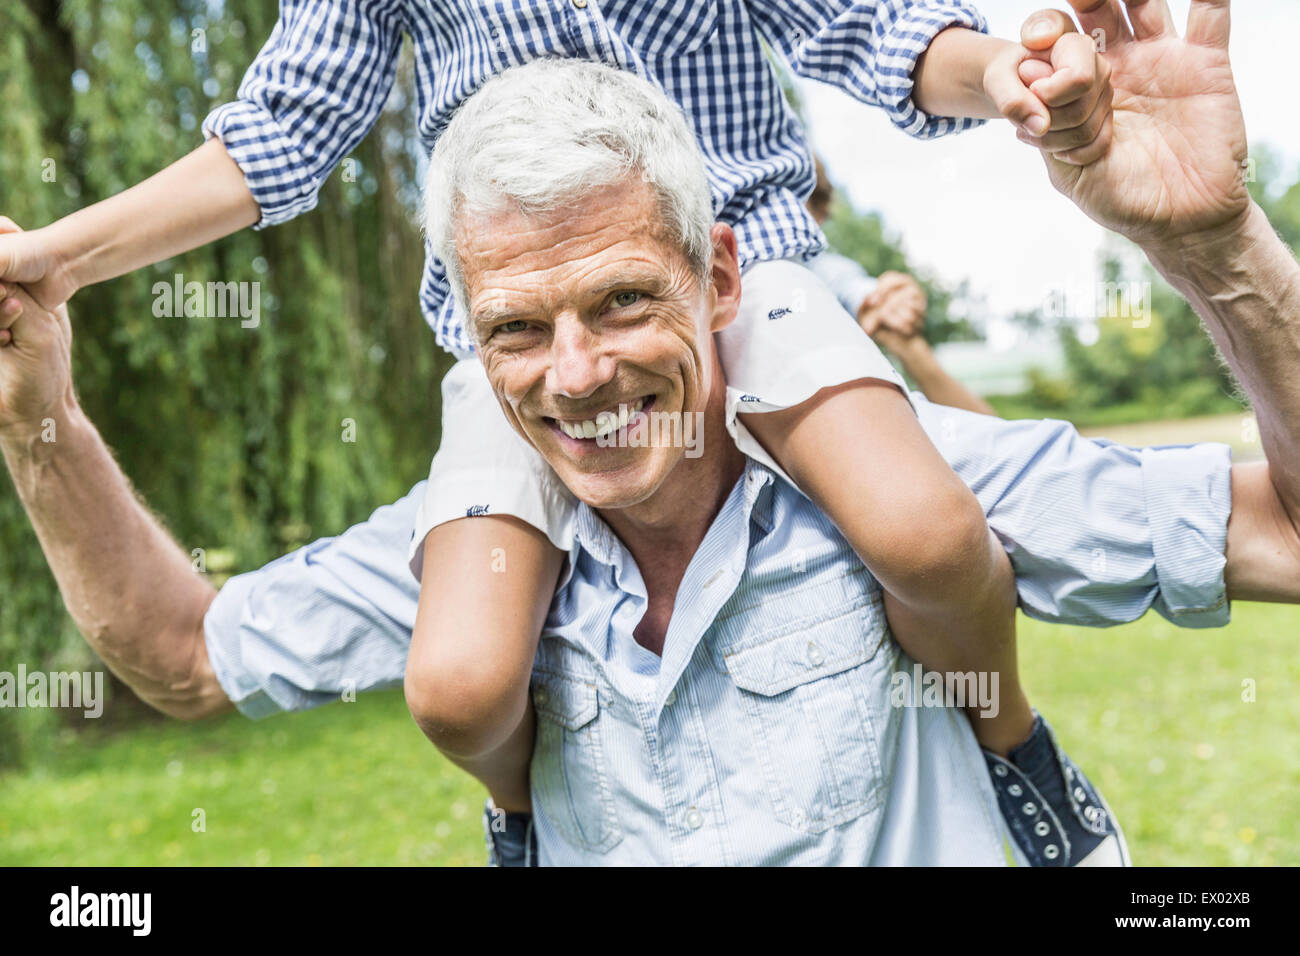 Portrait of grandfather giving shoulder carry to grandson in garden - Stock Image